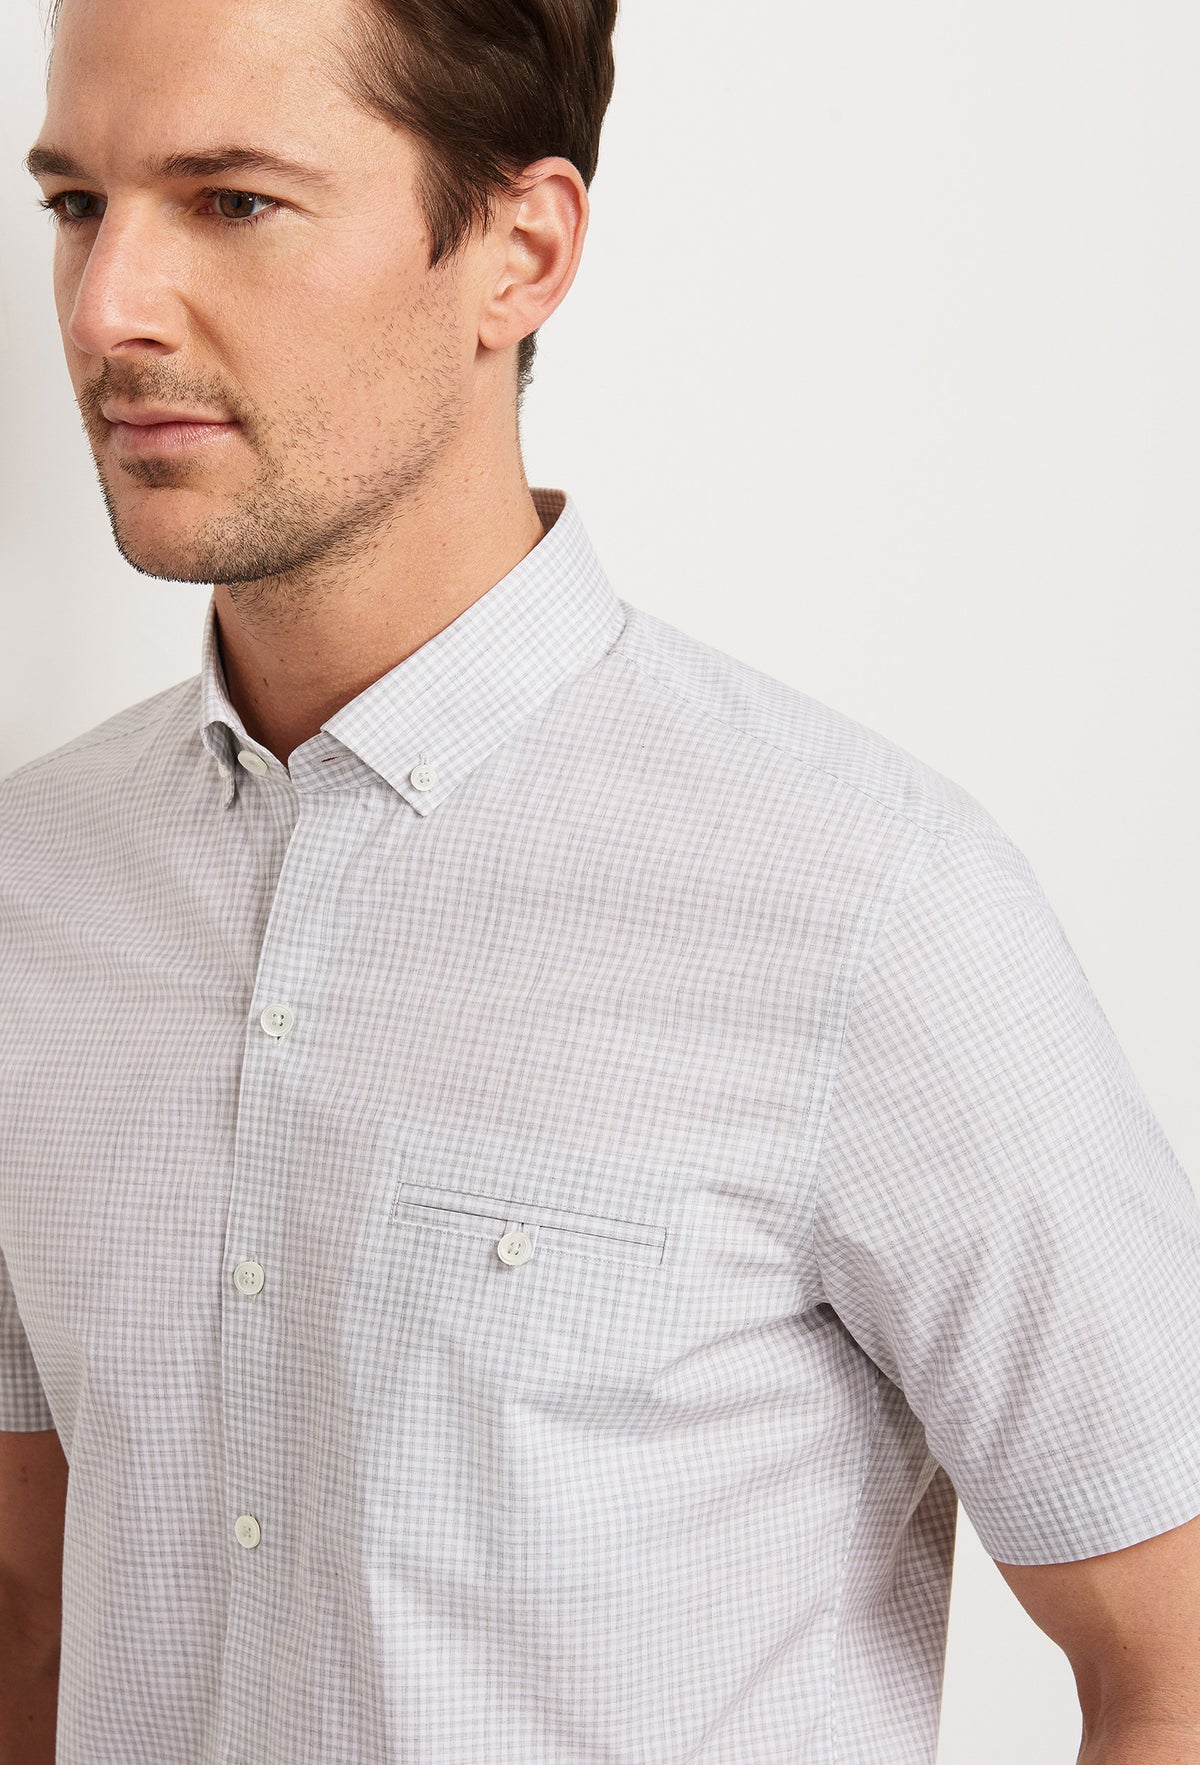 ZACHARY-PRELL-Cechini-ShirtsModern-Menswear-New-Dress-Code